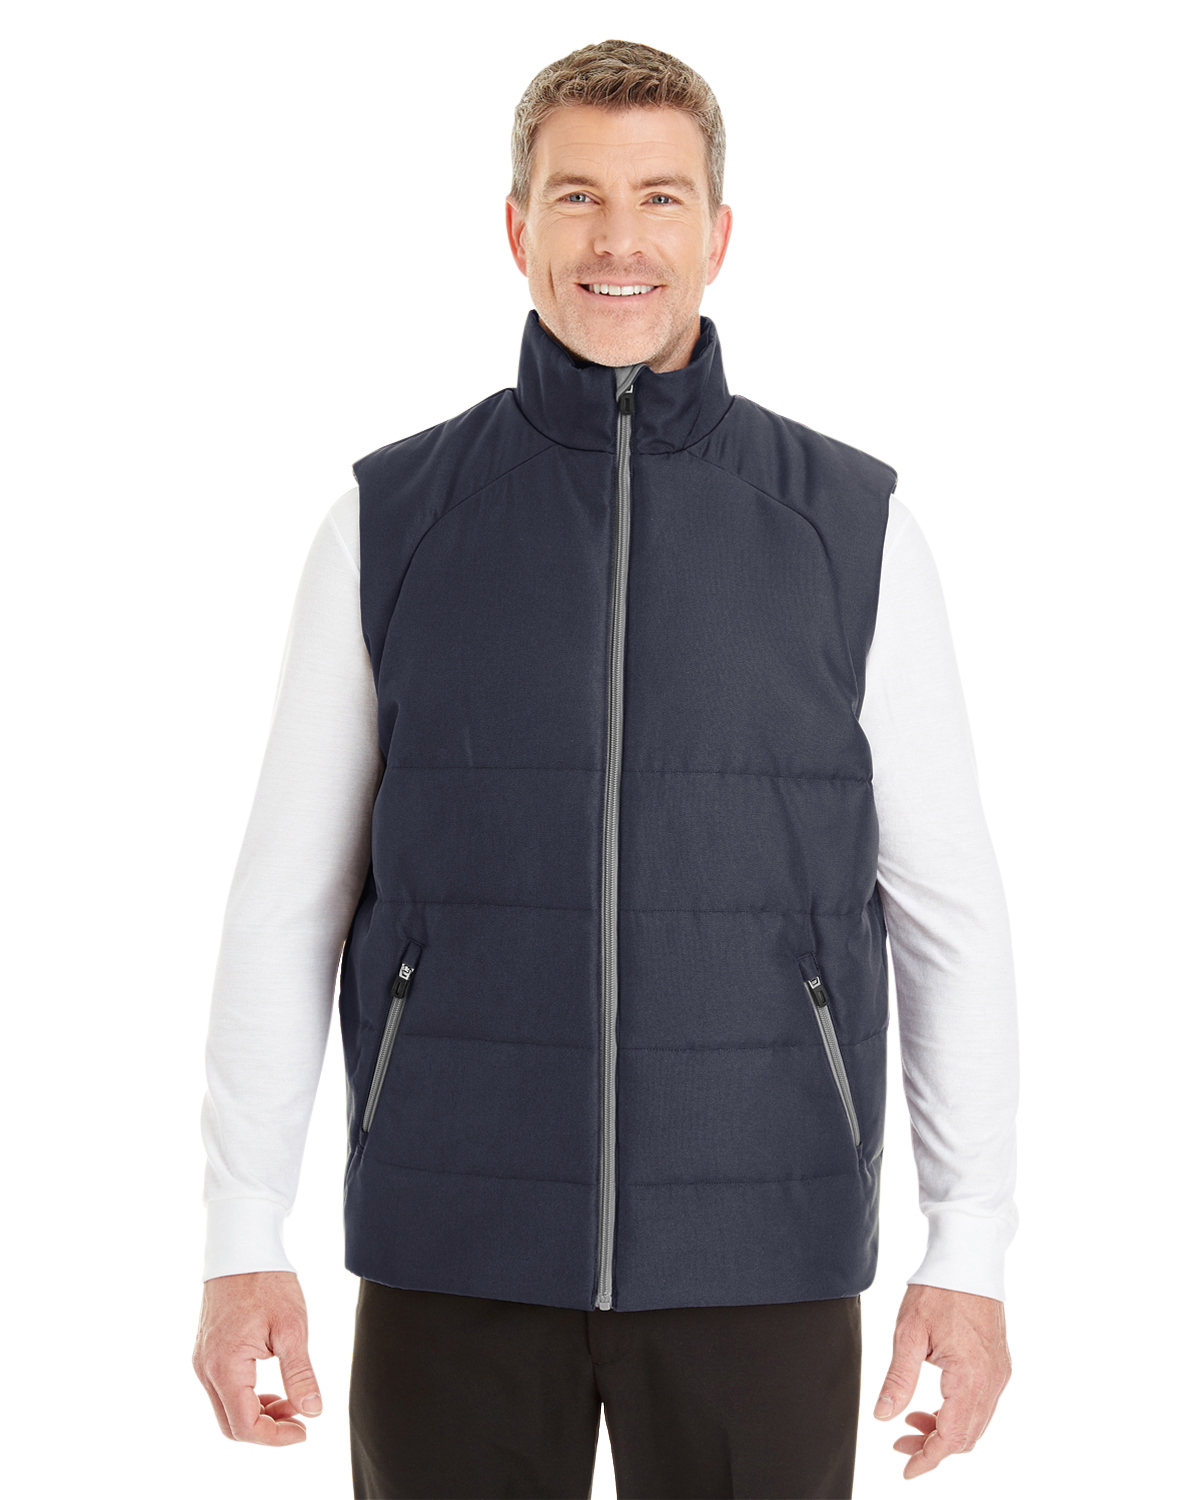 Ash City - North End NE702 - Men's Engage Interactive Insulated Vest